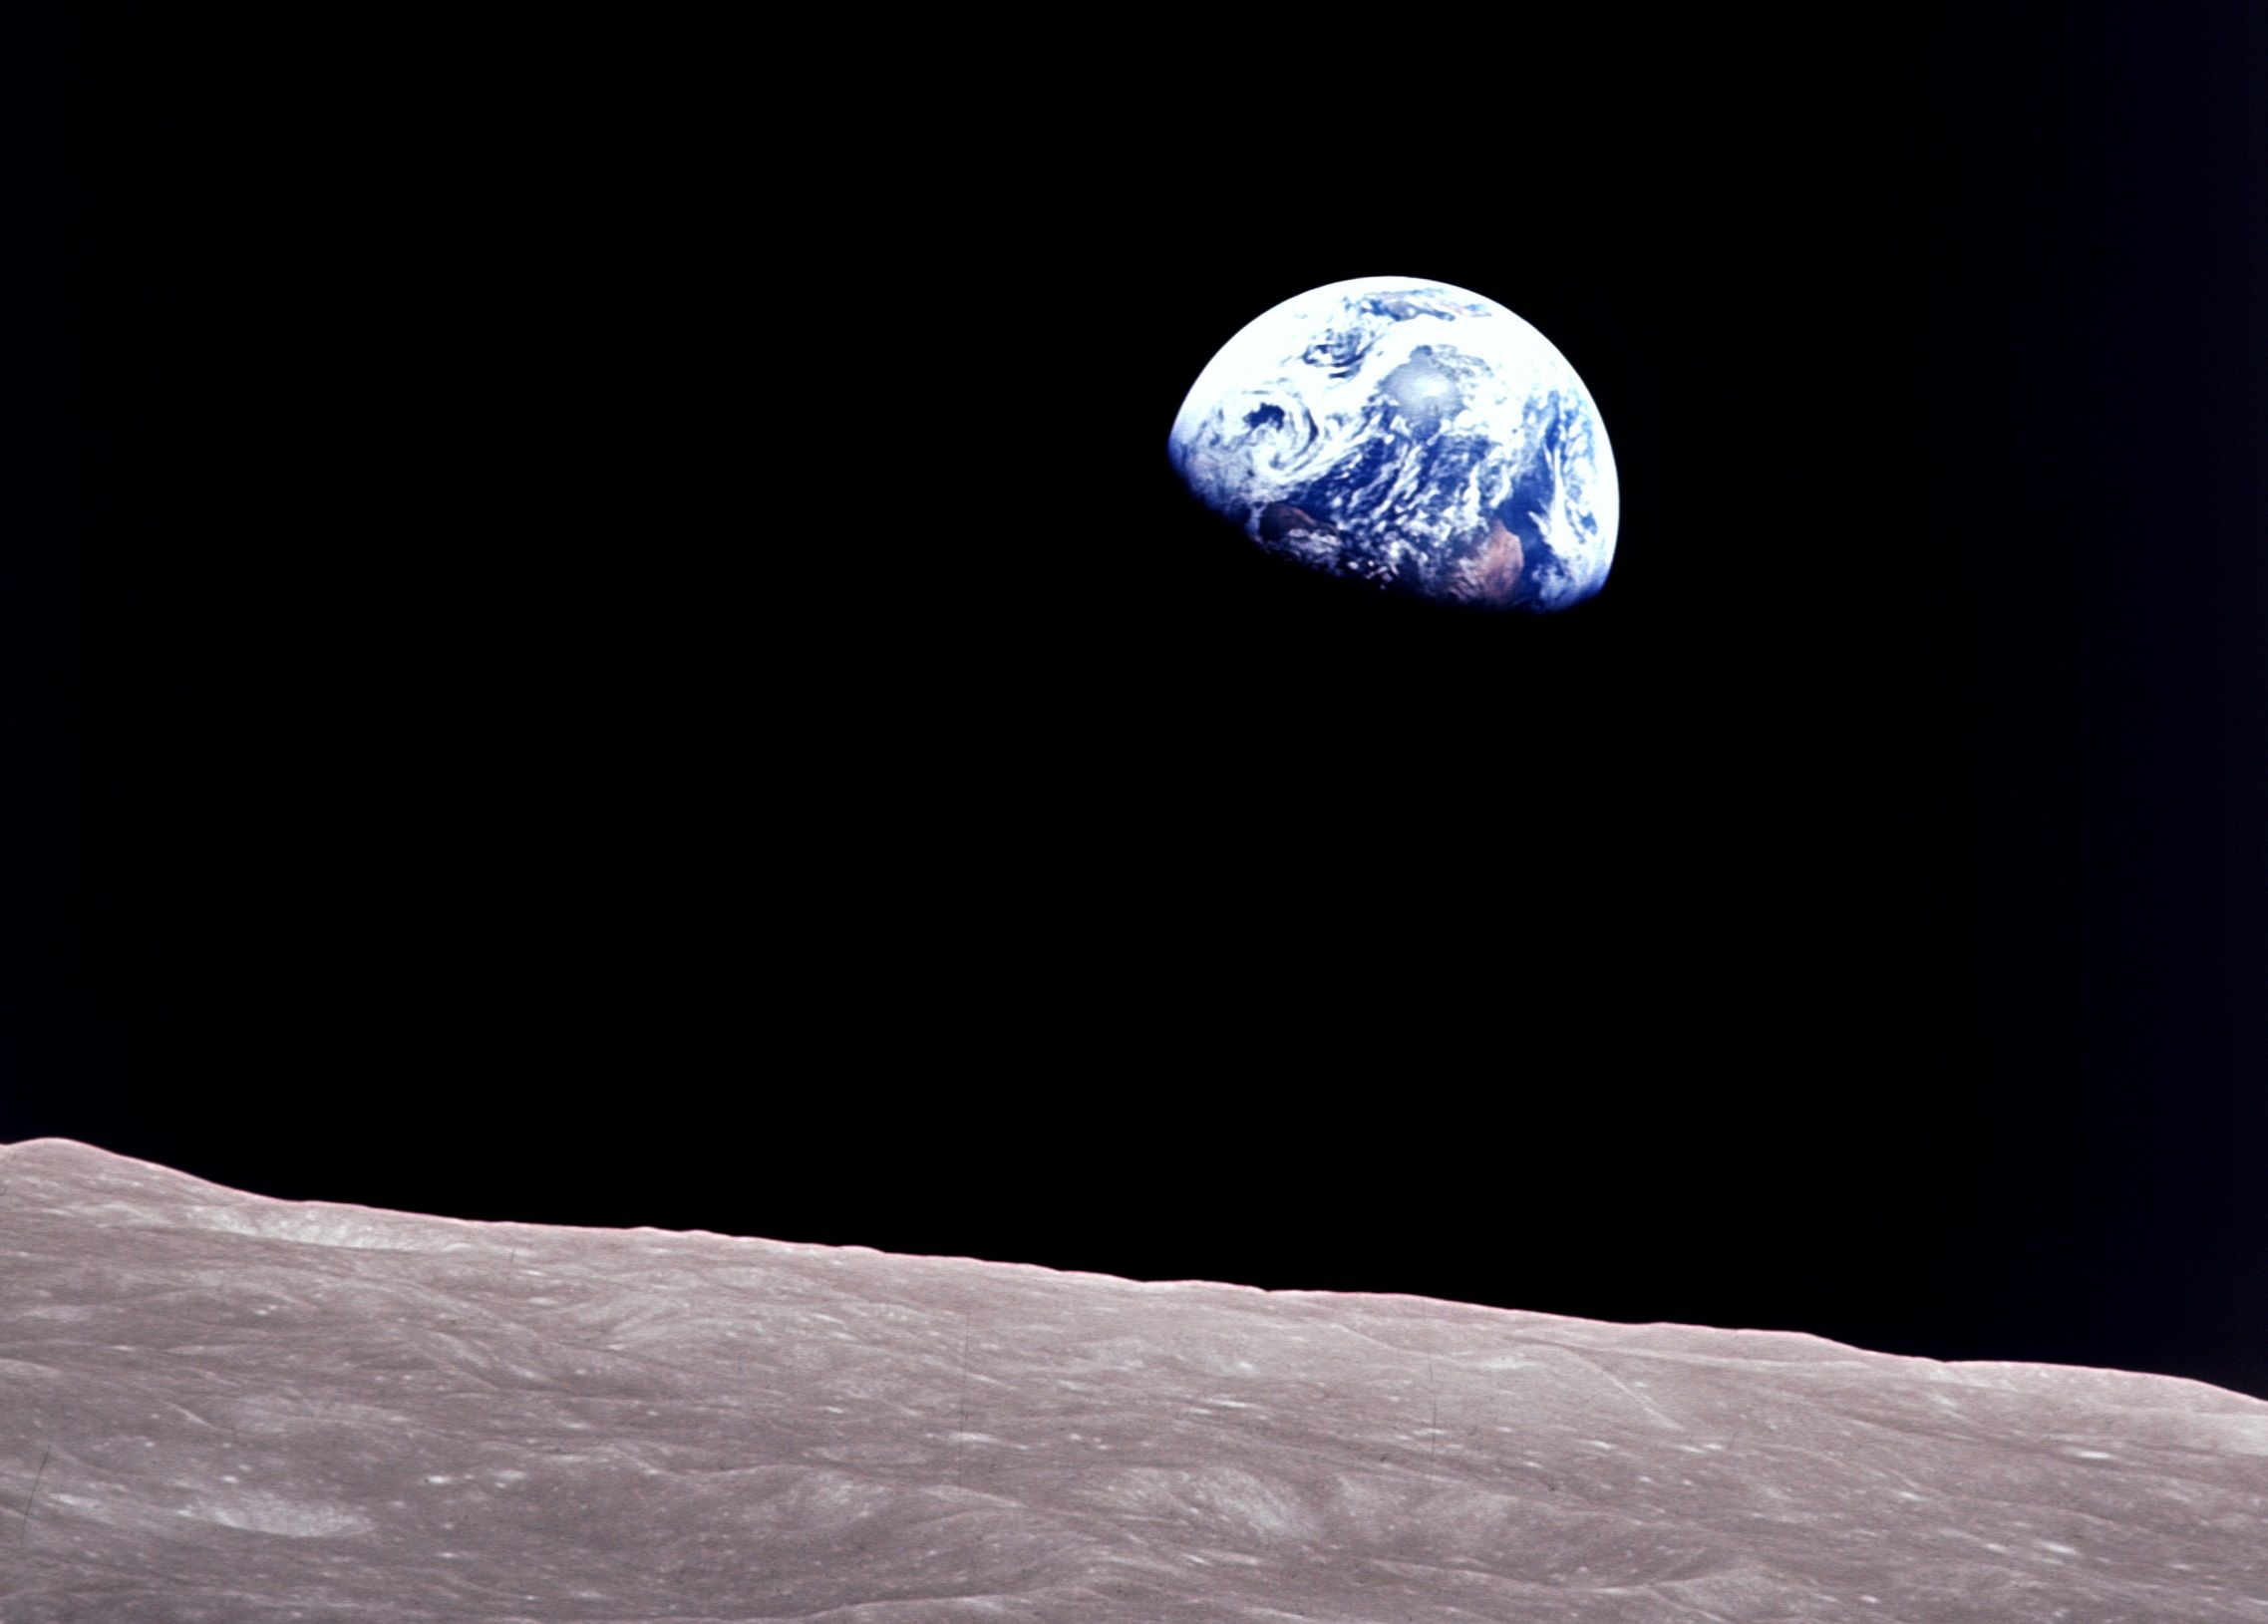 apollo 8, moon, earth, earthrise